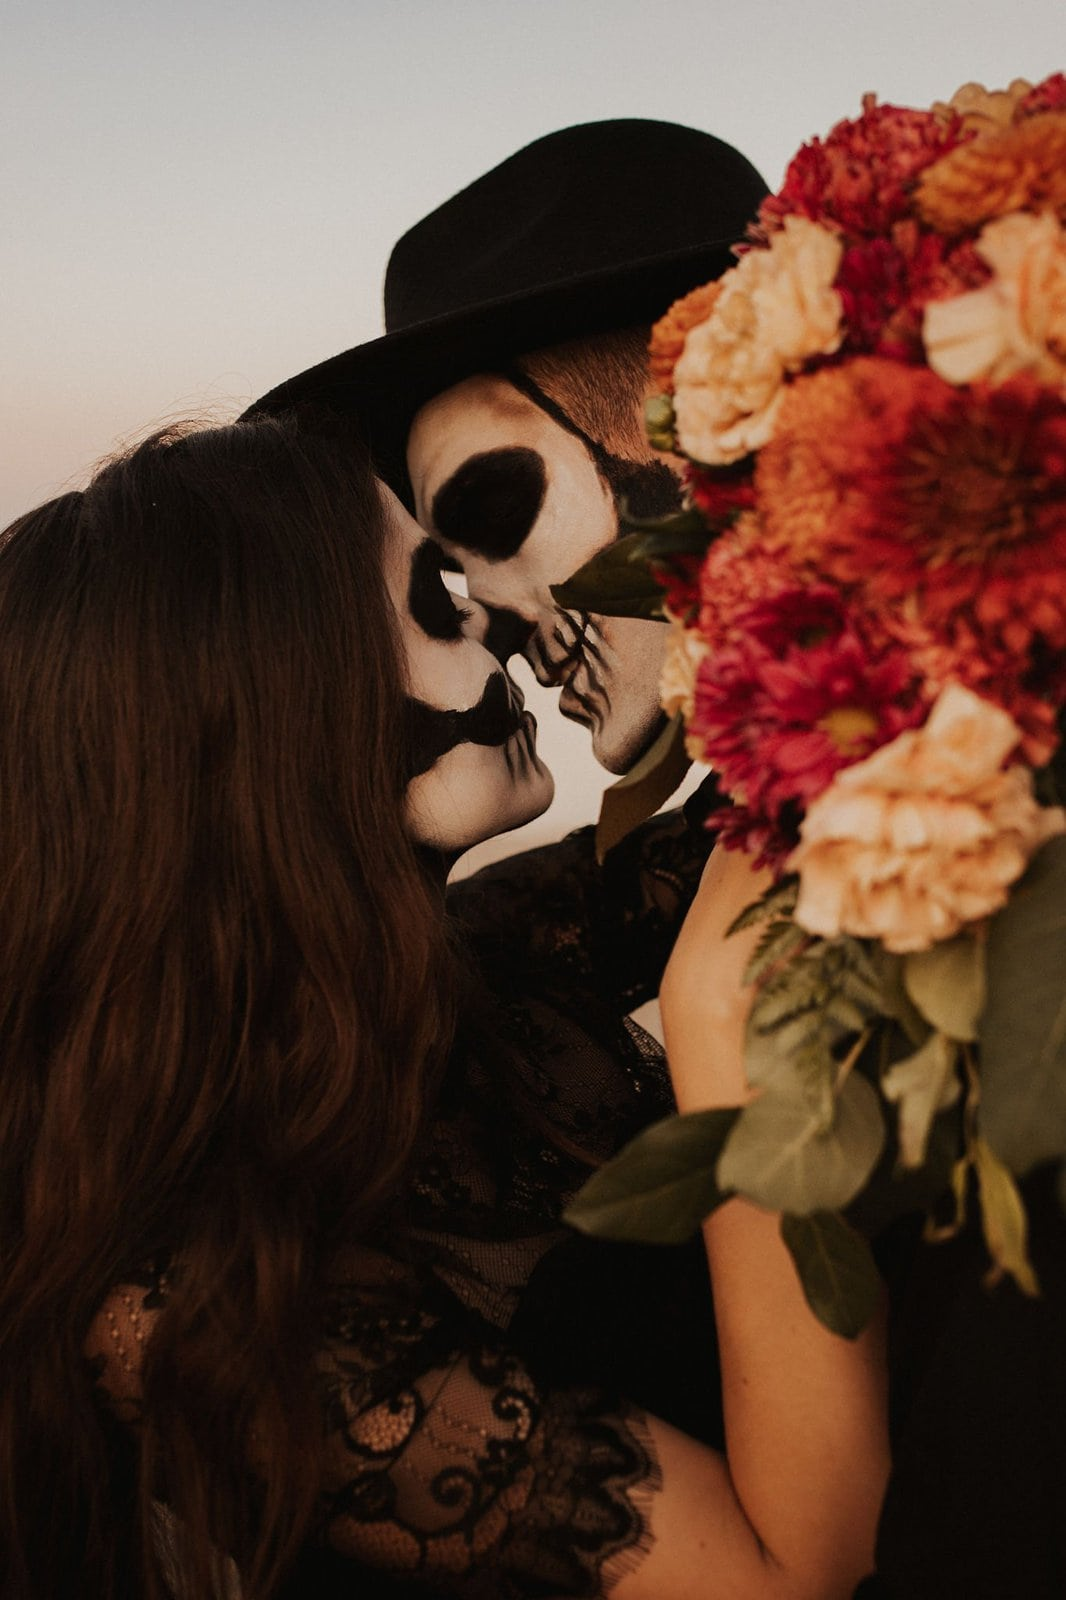 Couple session for Halloween.